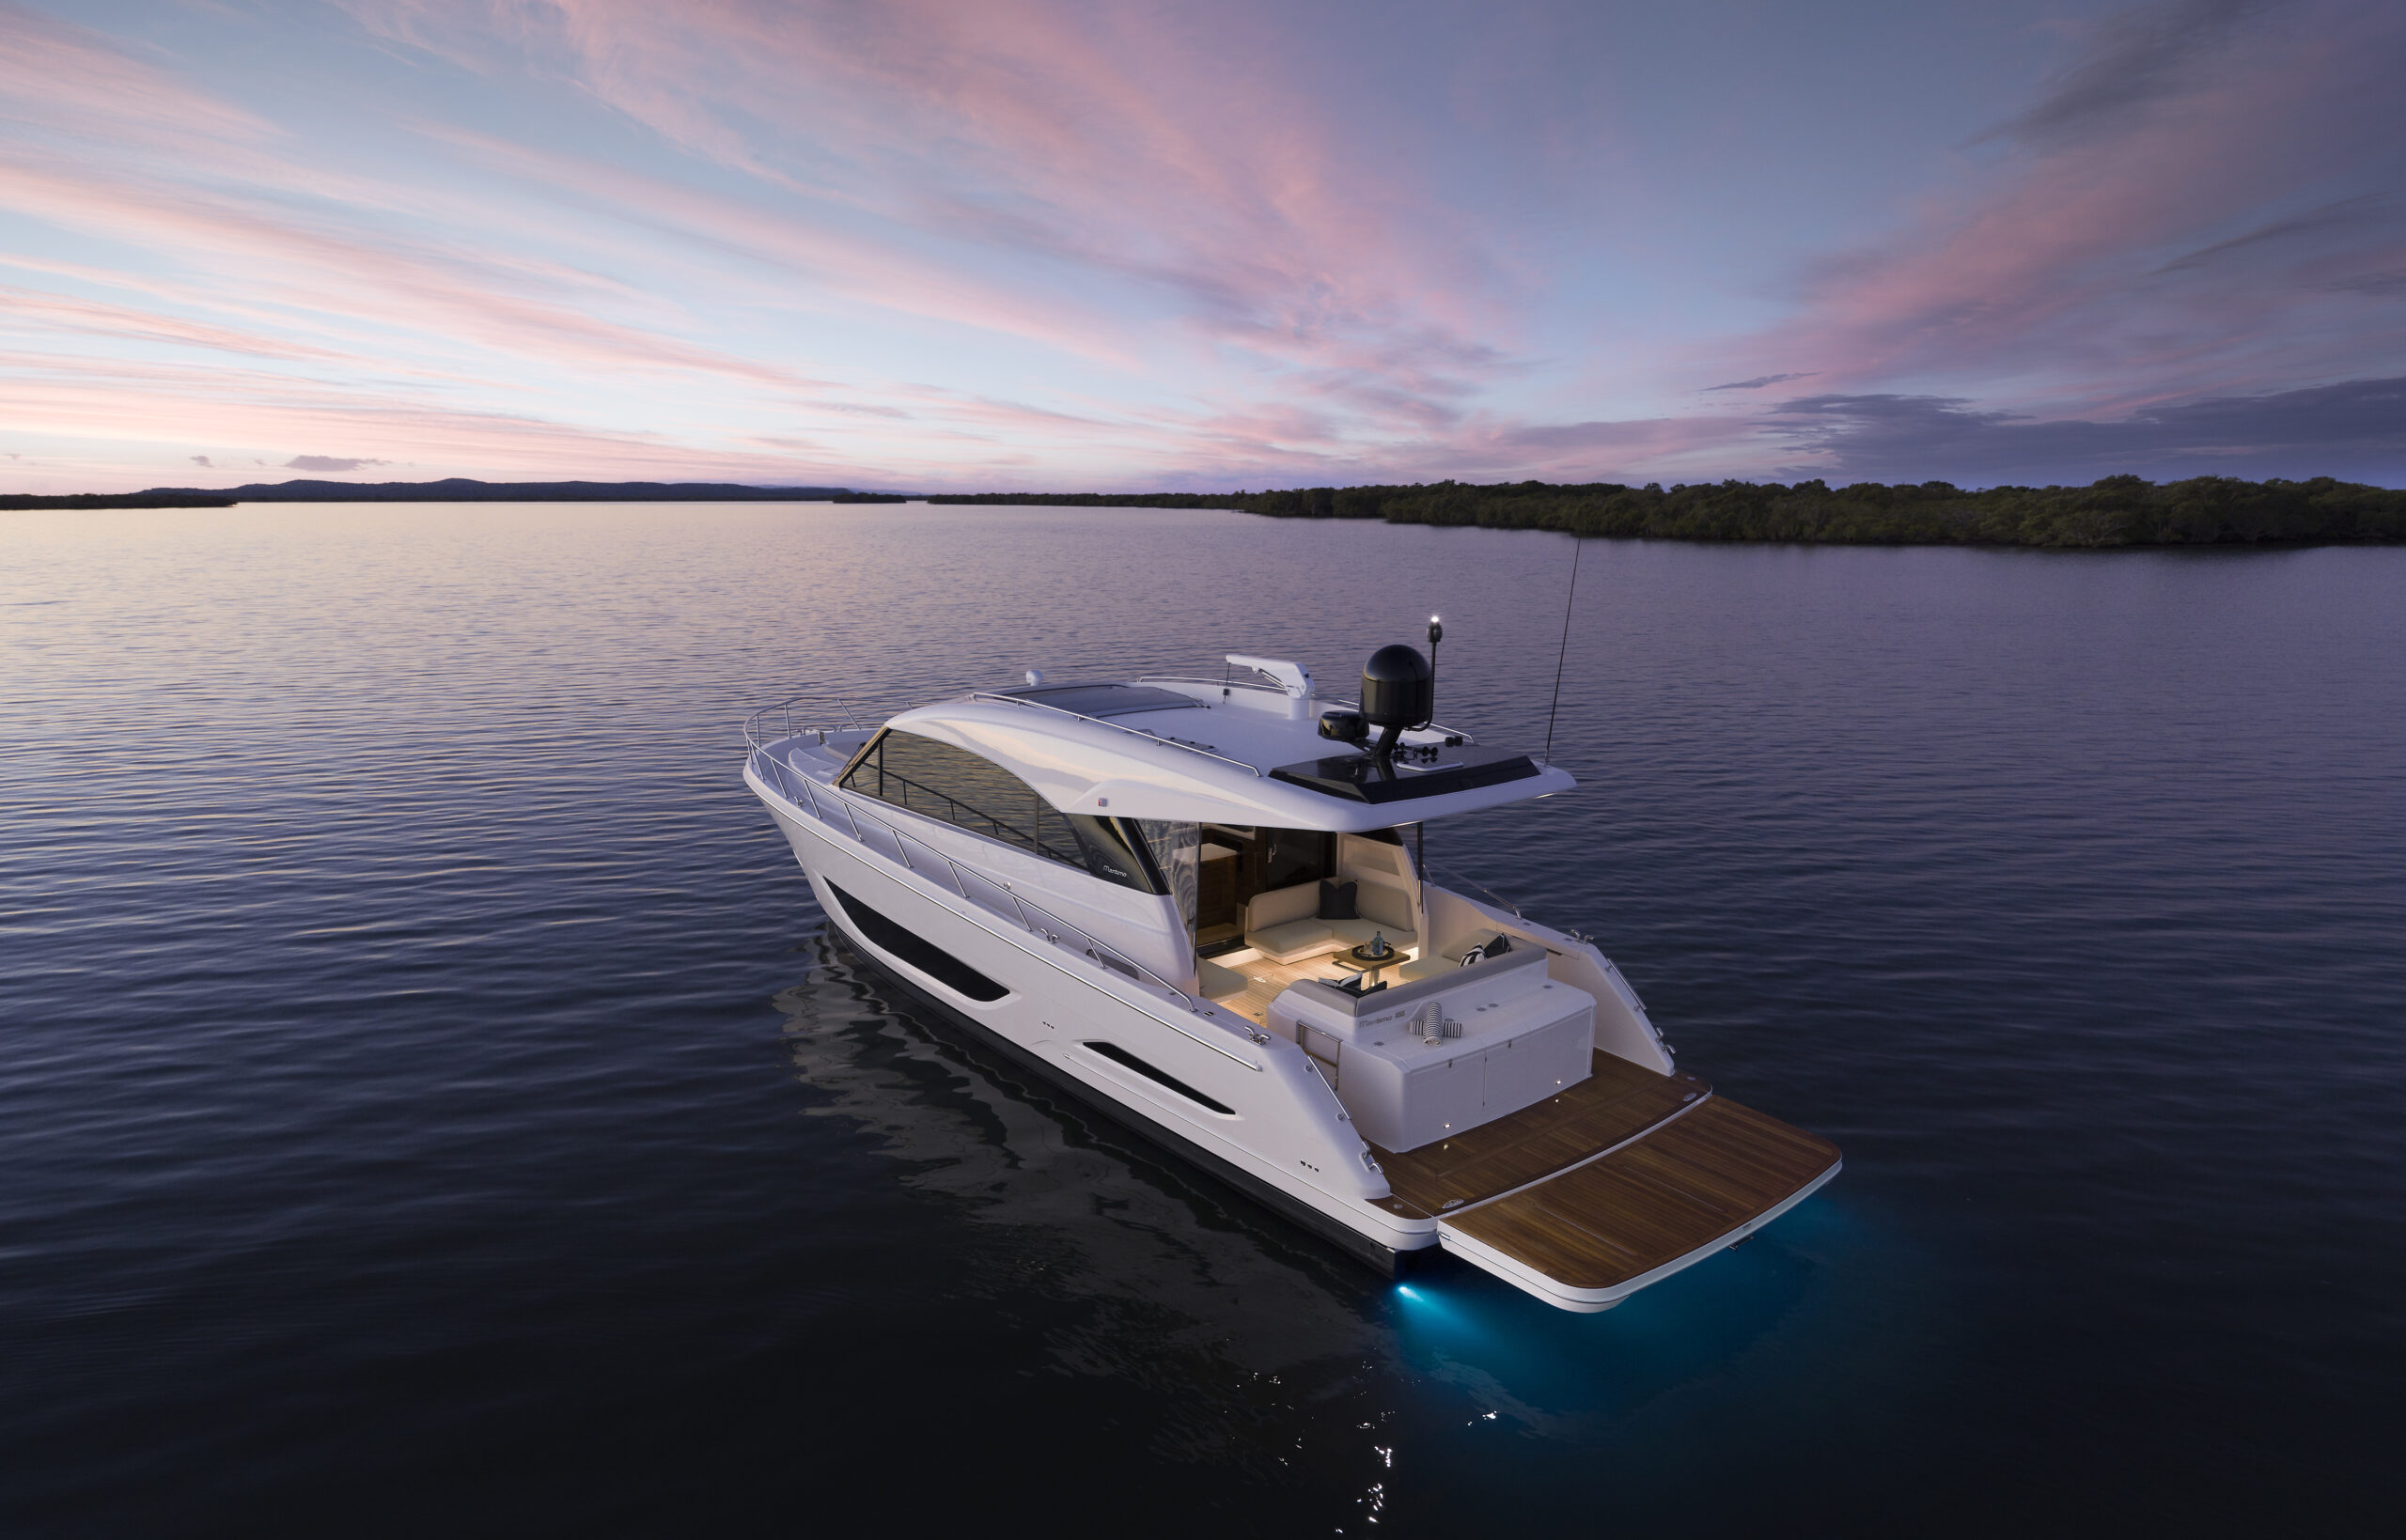 Maritimo S55 anchored whilst sun is setting